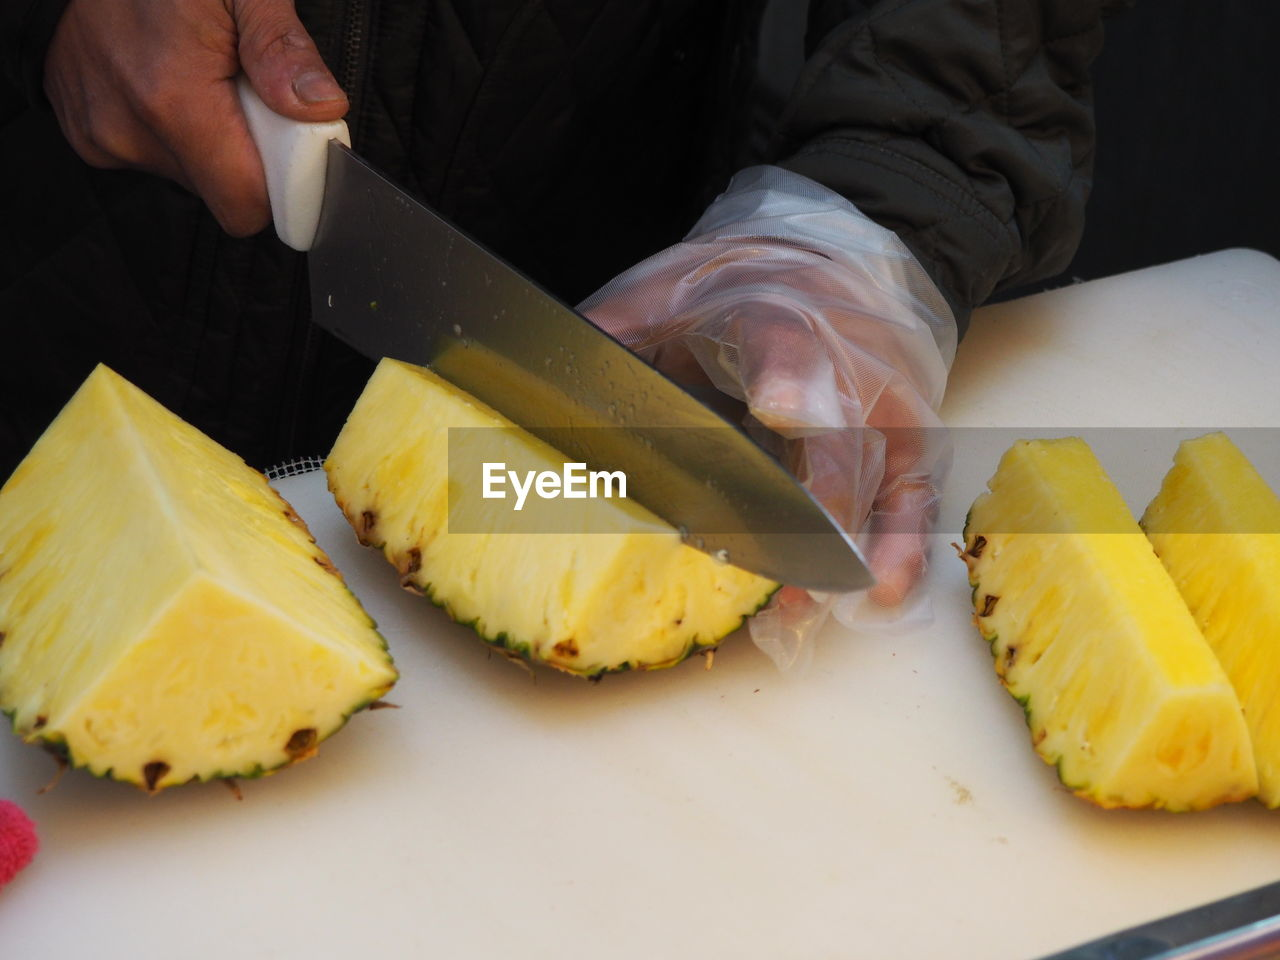 Cropped Image Of Male Vendor Cutting Pineapple On Board